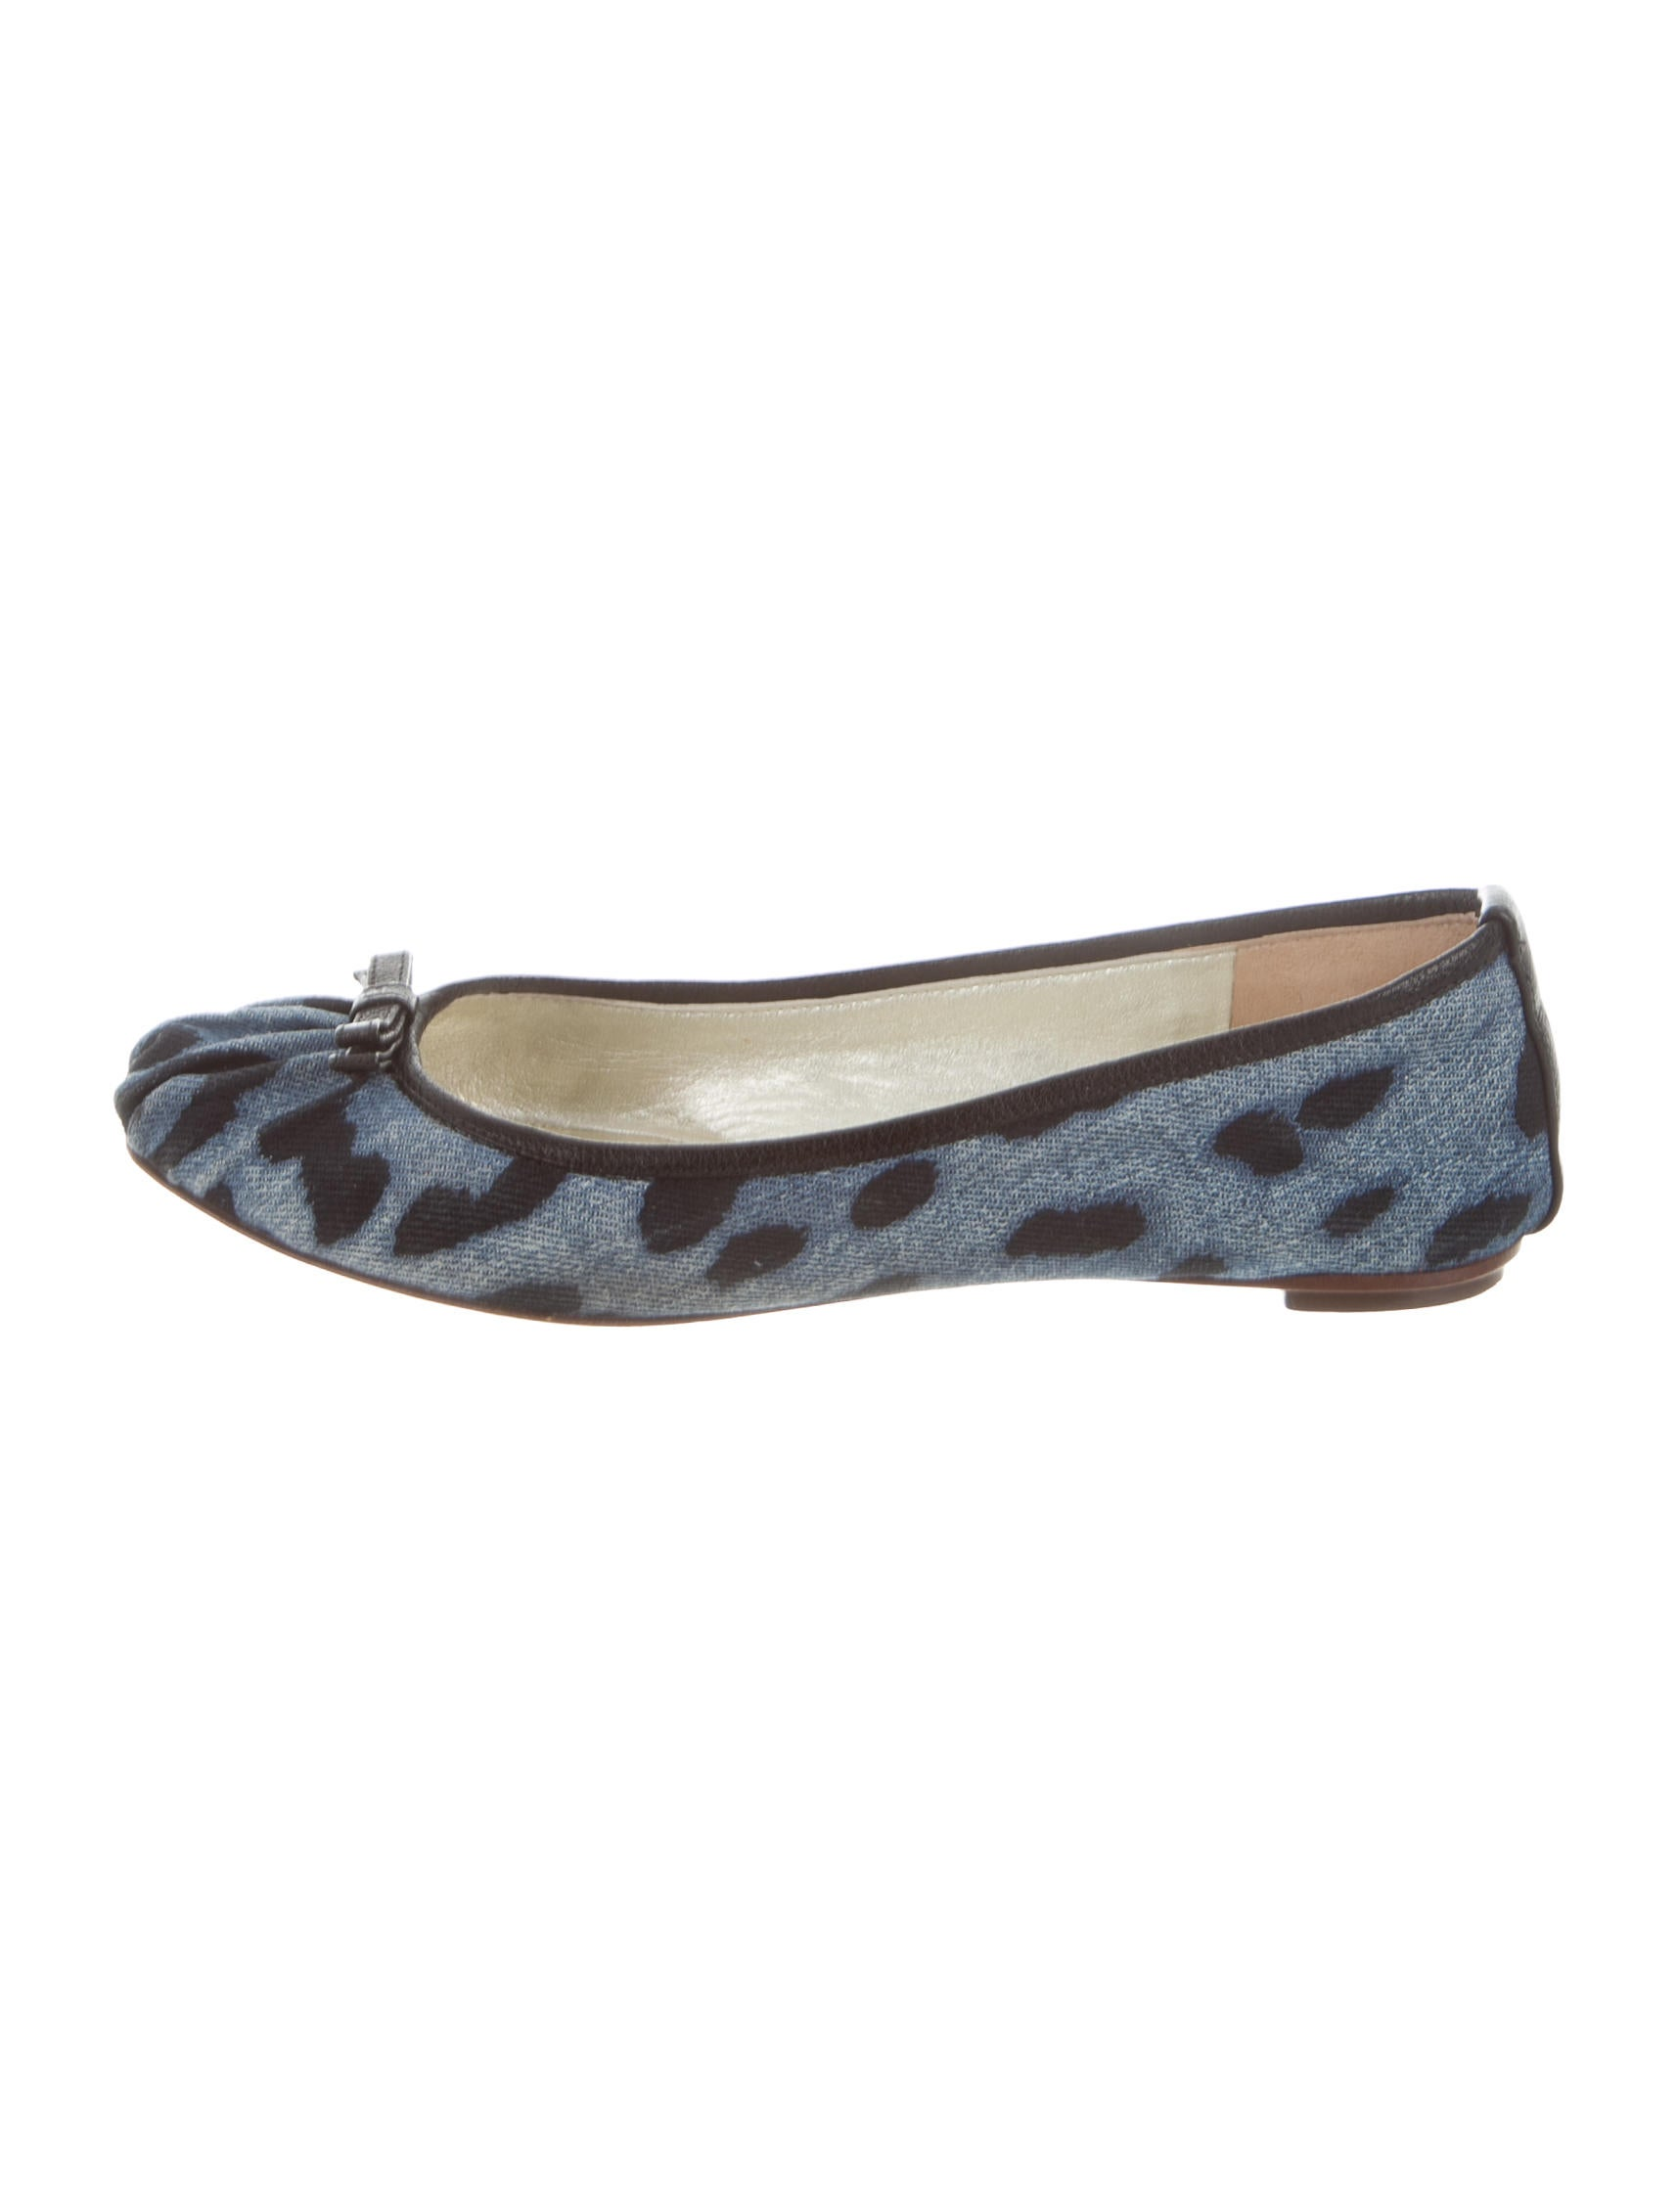 with paypal cheap price discount classic Dolce & Gabbana Denim Leopard Print Flats shopping online sale online buy cheap recommend 8syhq5Fa